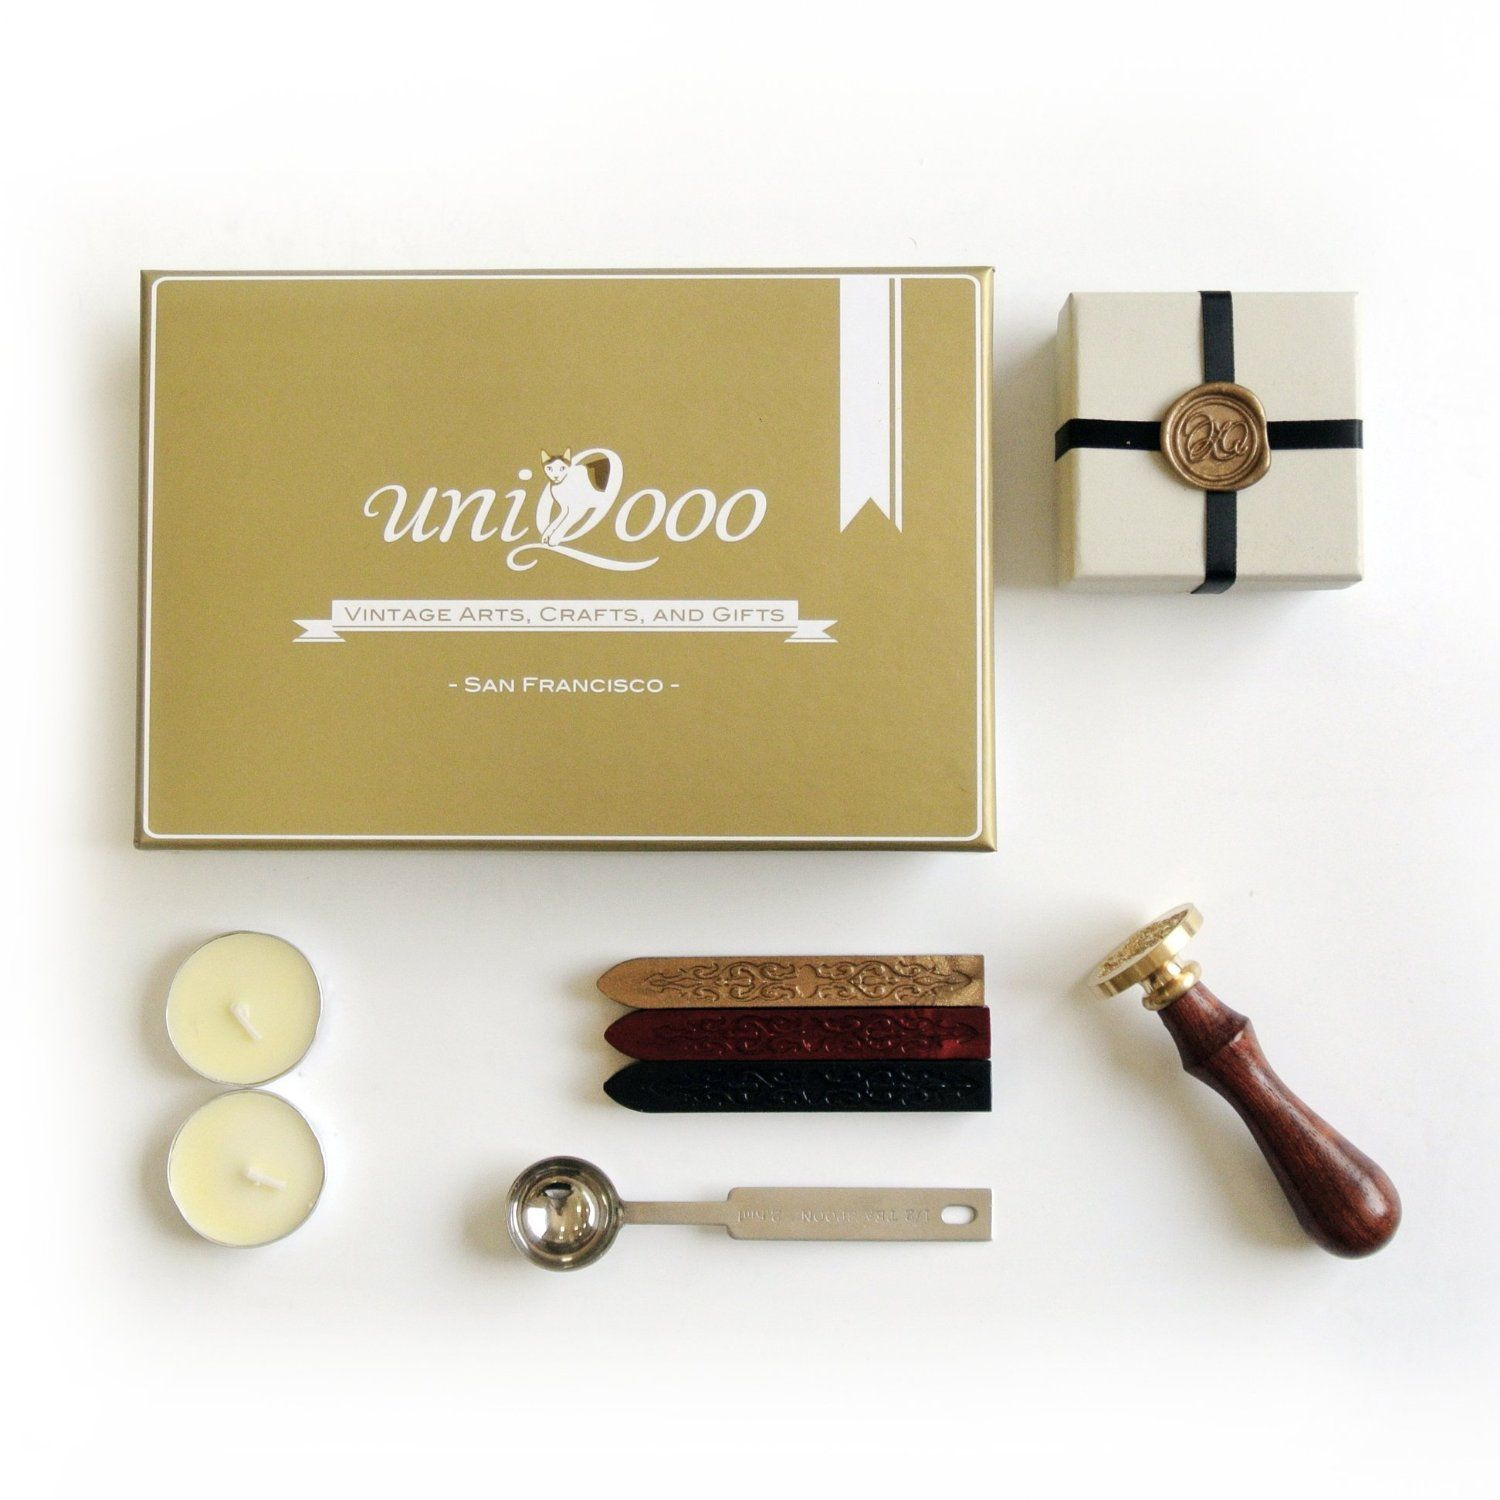 Amazon.com : UNIQOOO Re-created Hogwarts School Badge Vintage Wax Seal Stamp Set : Business Stamps : Office Products